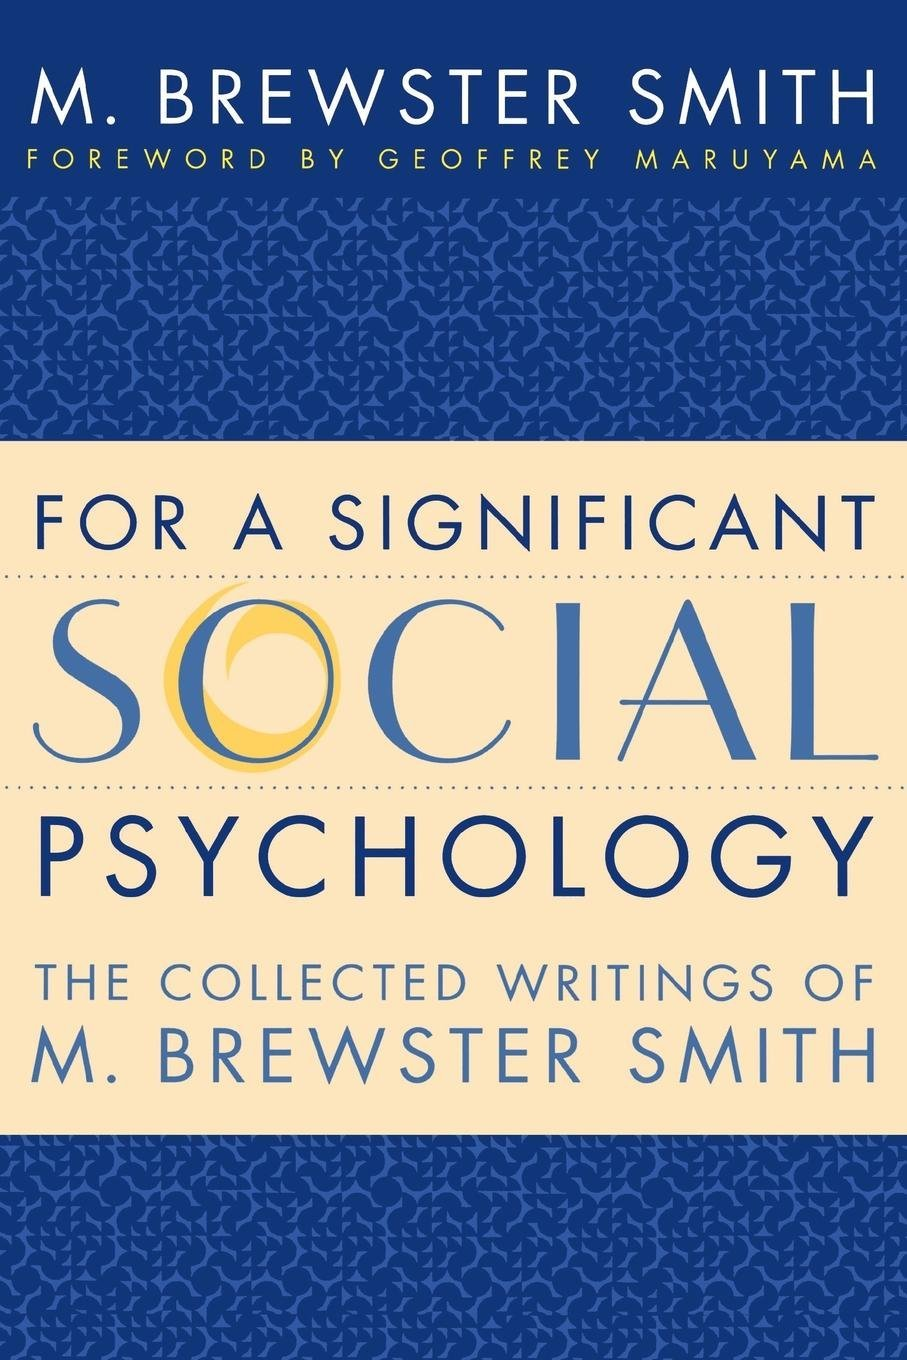 For a Significant Social Psychology: The Collected Writings of M. Brewster Smith ebook